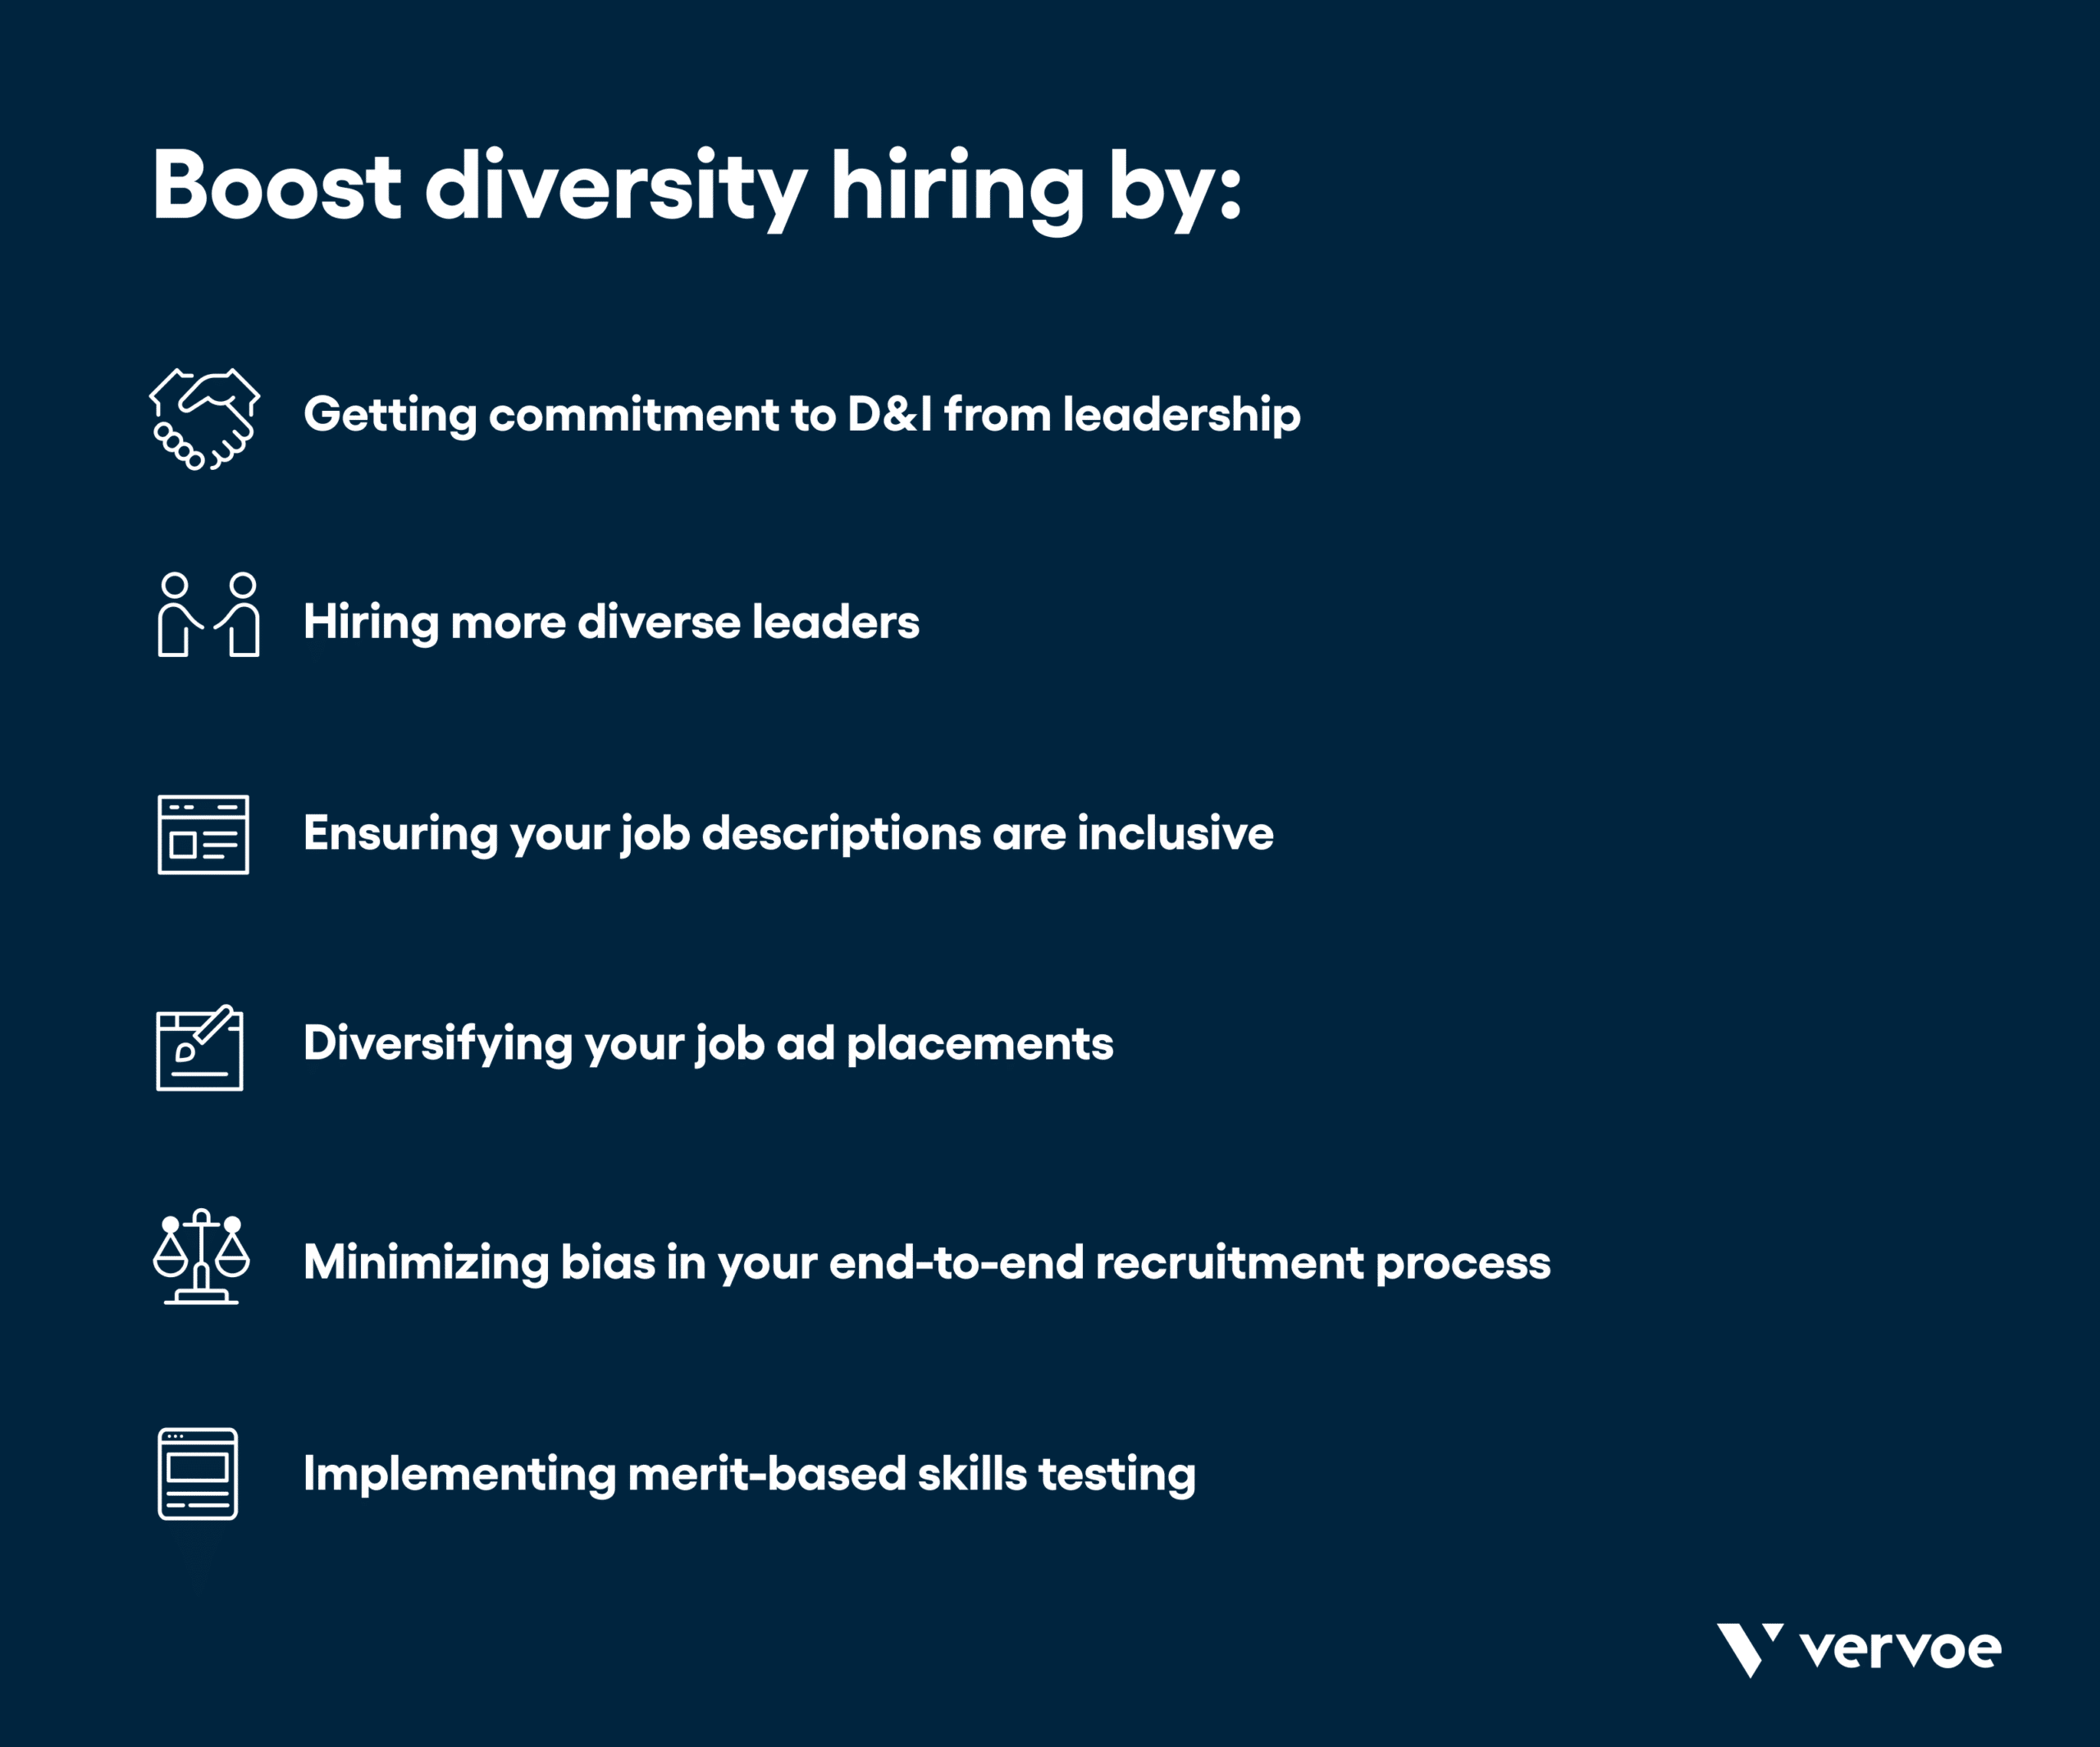 Infographic of tips for diversity hiring